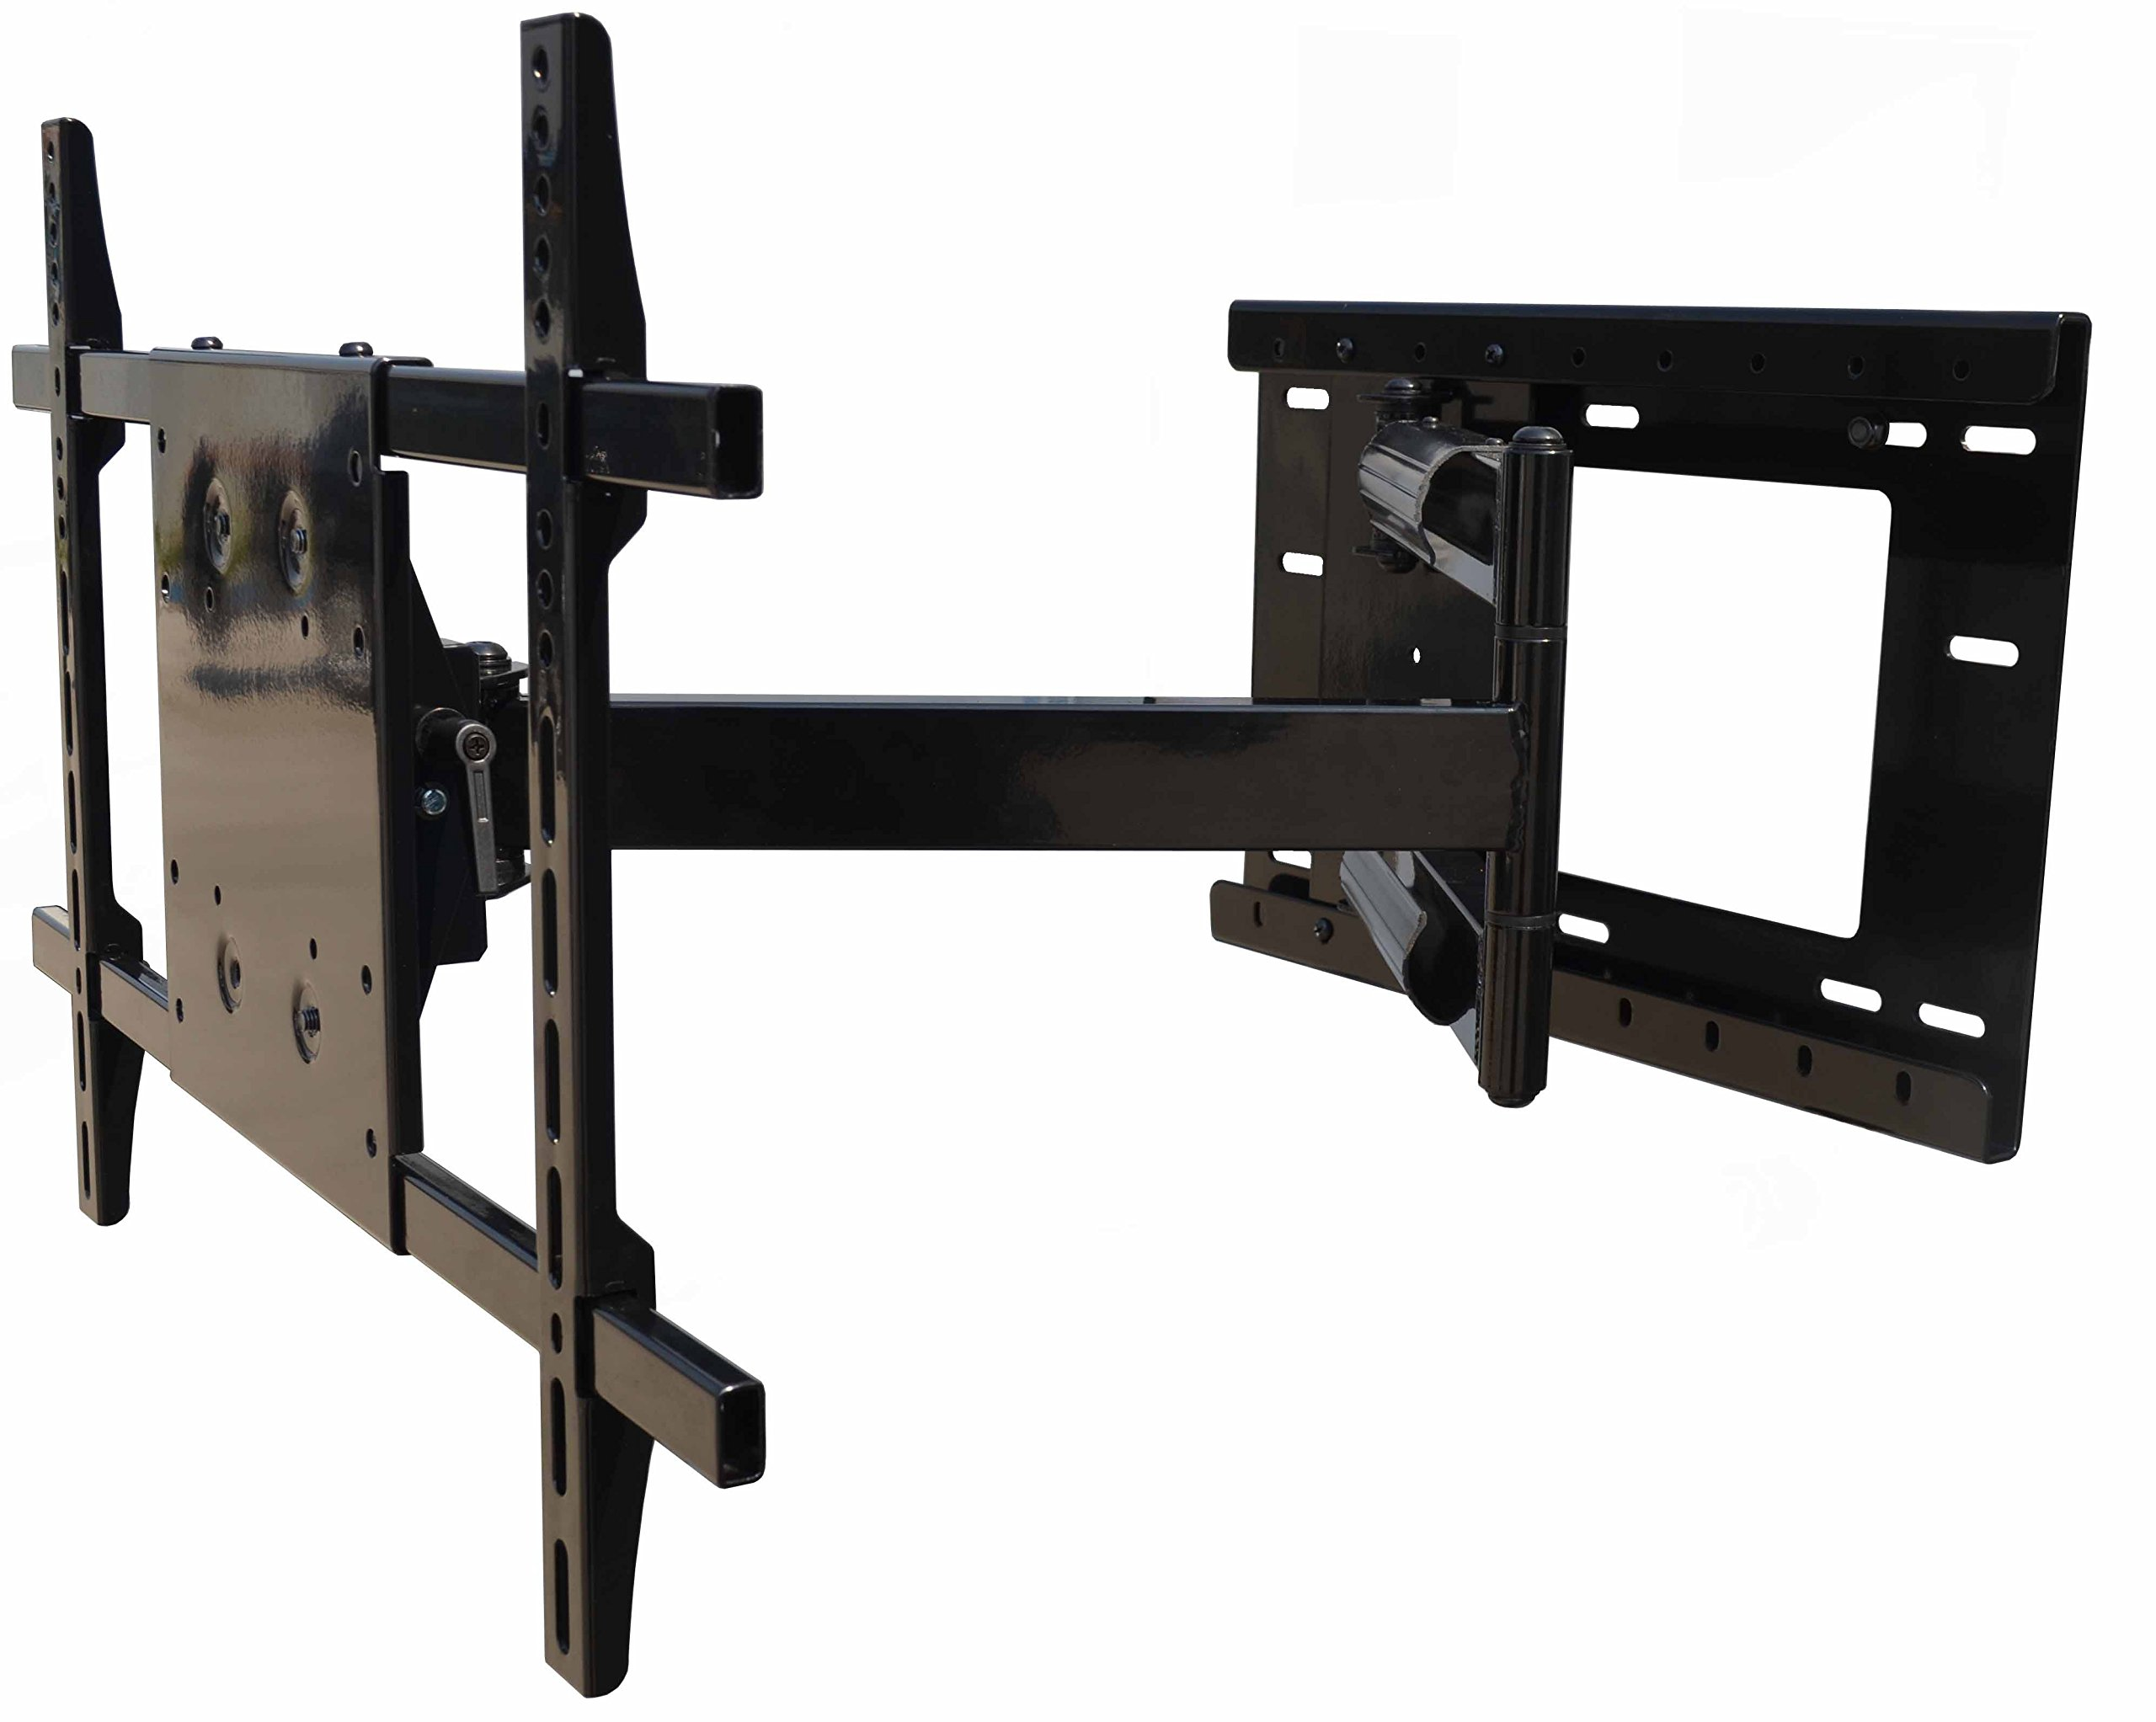 Professional Smooth Articulating LED TV Mount for Samsung LG 48'', 50'', 55'', 60'' with 31.5'' extension